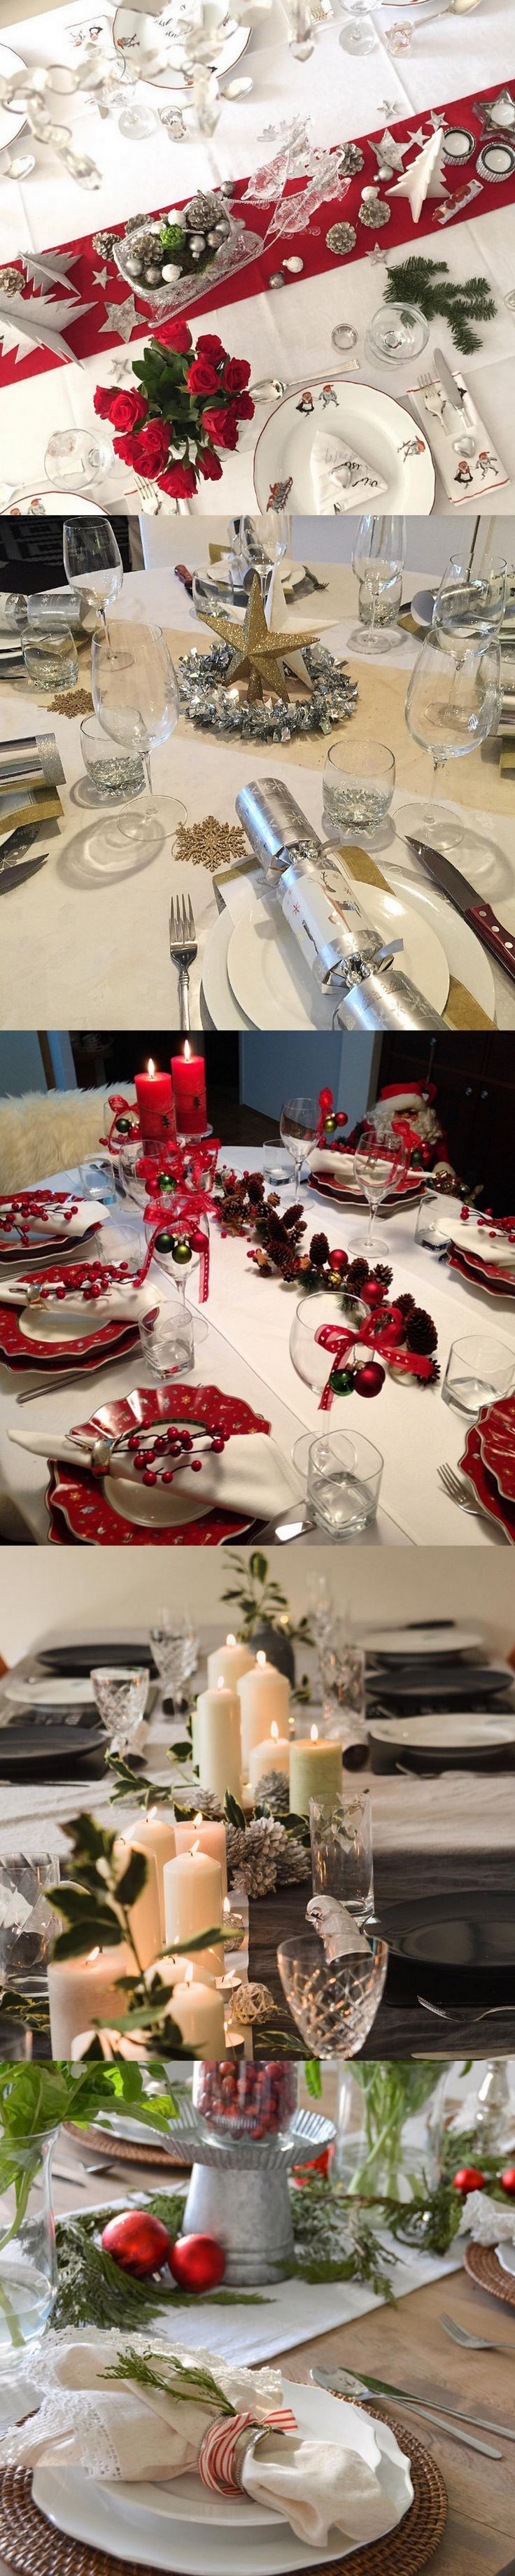 78 images about christmas table decorations on pinterest tablescapes natale and centerpieces - Superb modern christmas decor ideas ...